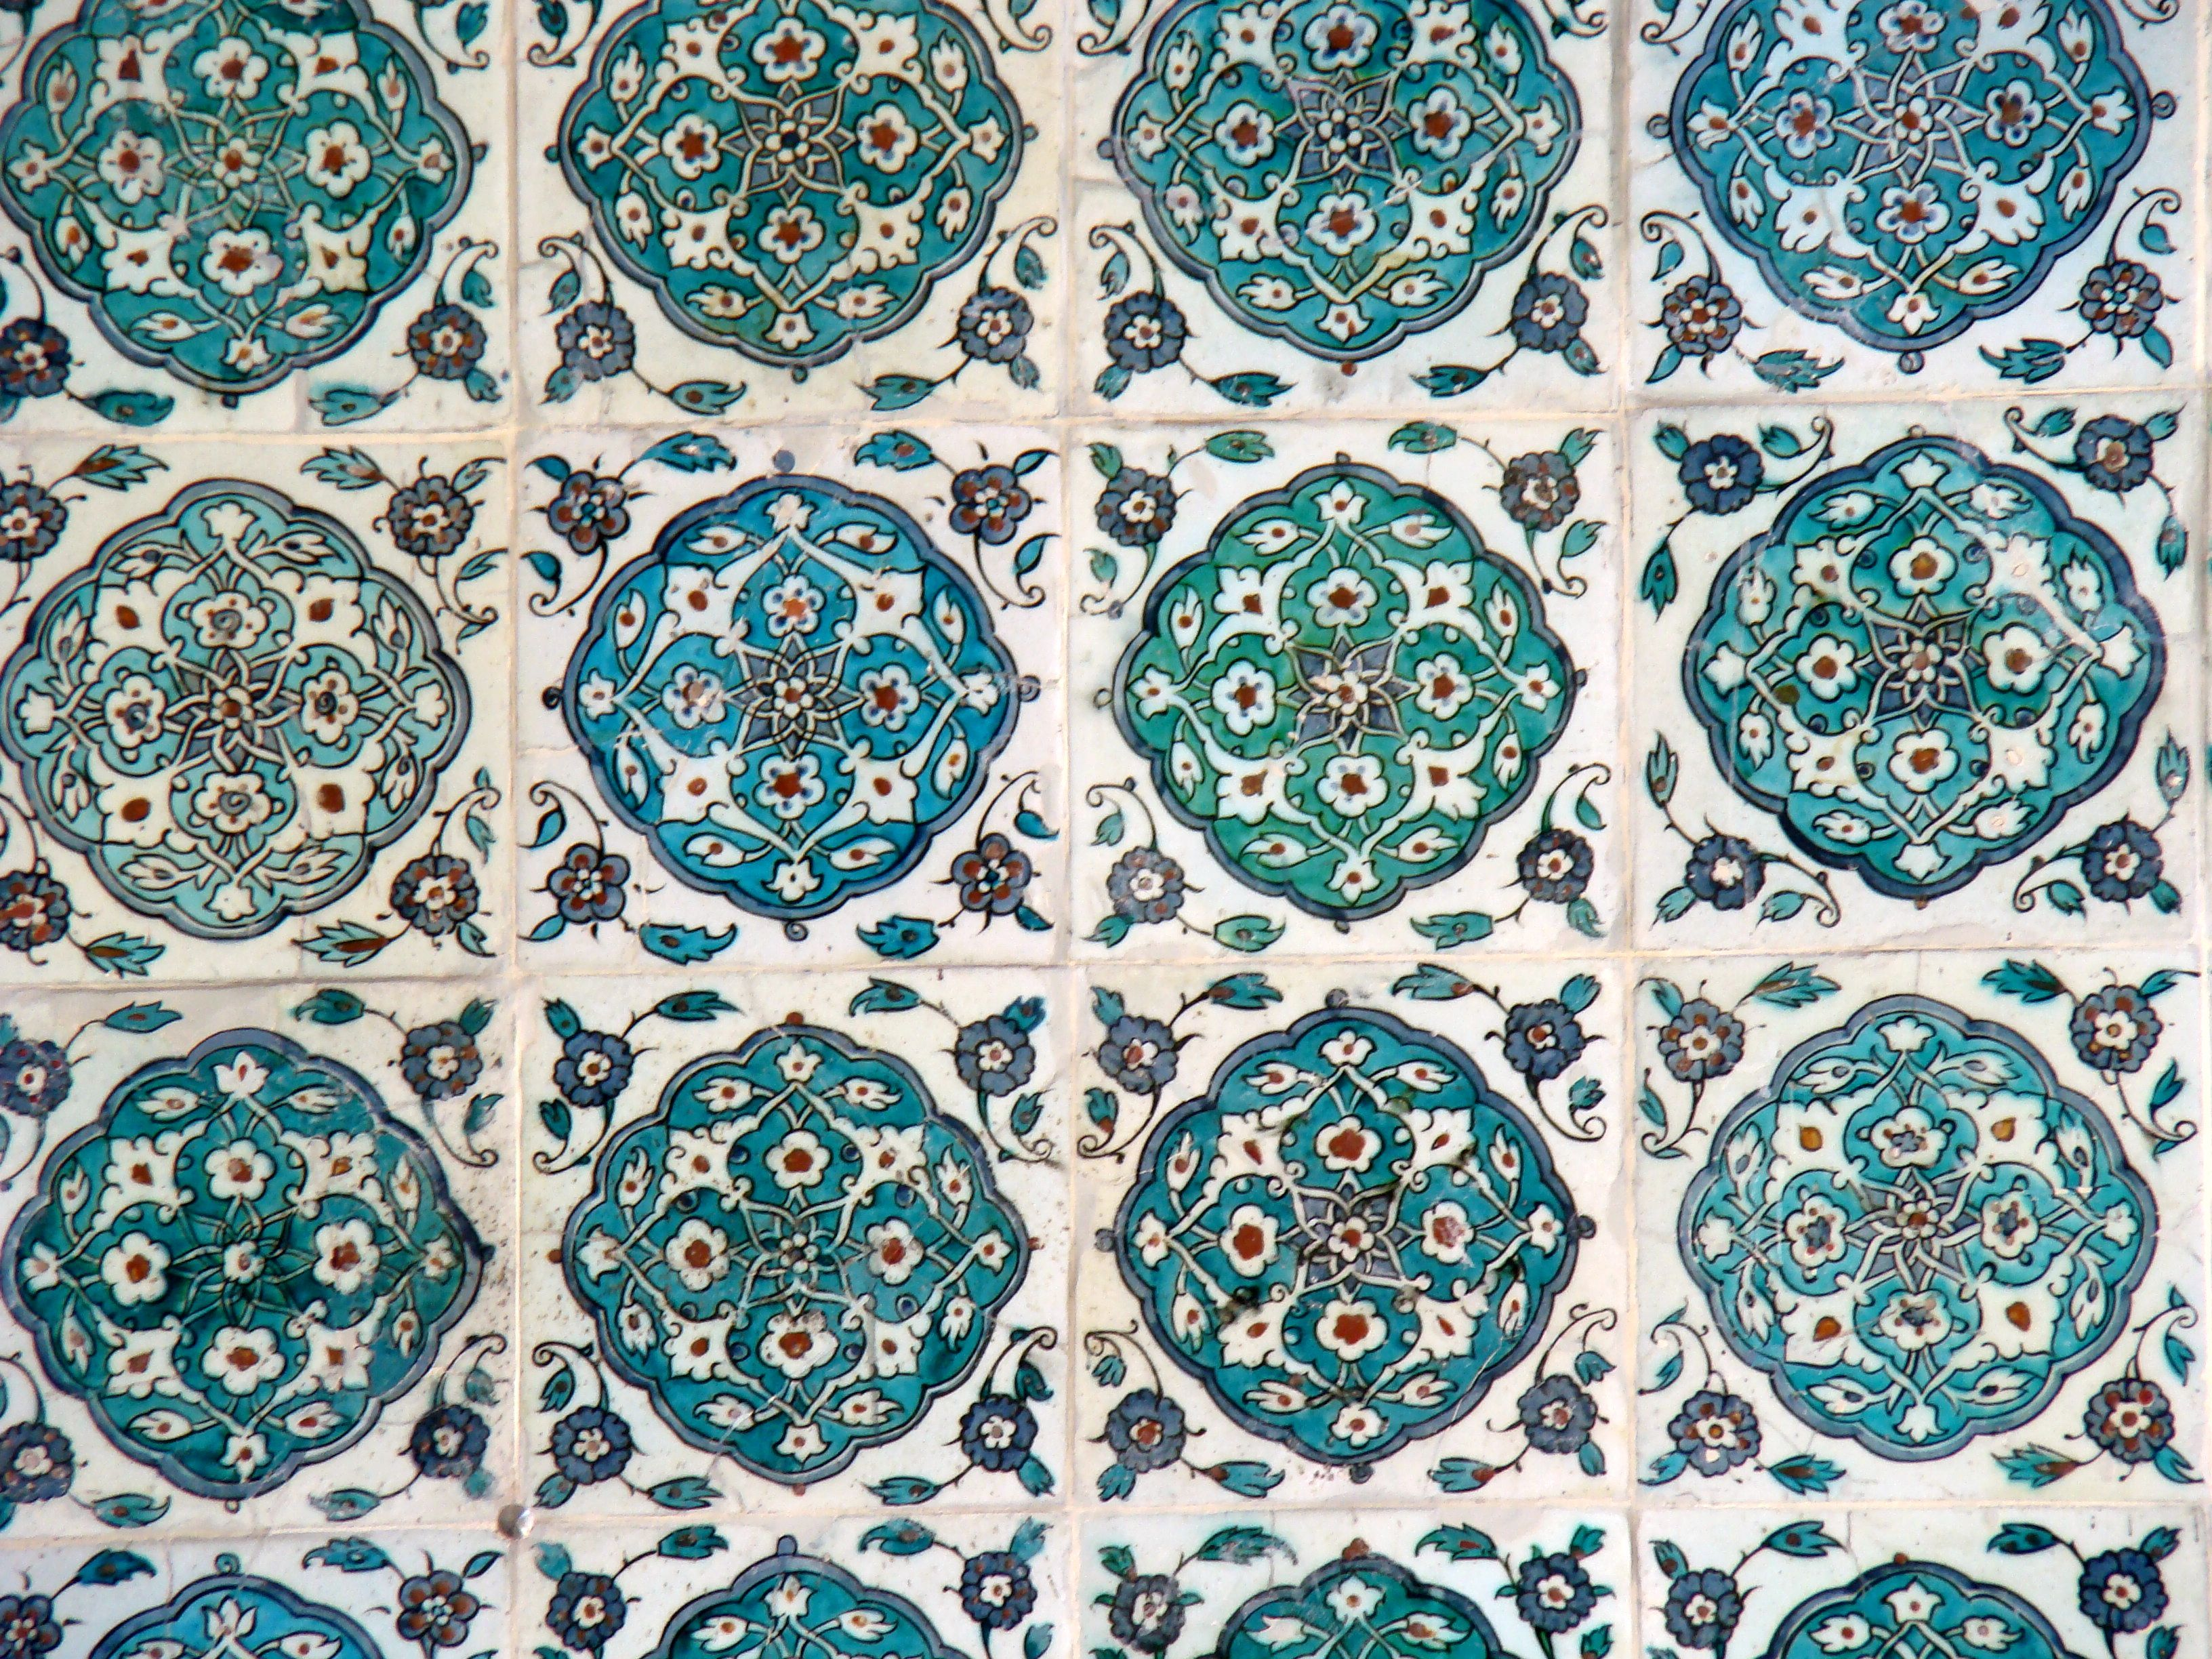 Tile Decorations Beauteous Blue Mosque Iznik Tiles  Blue Iznik Tile Decorations Topkapi 2018